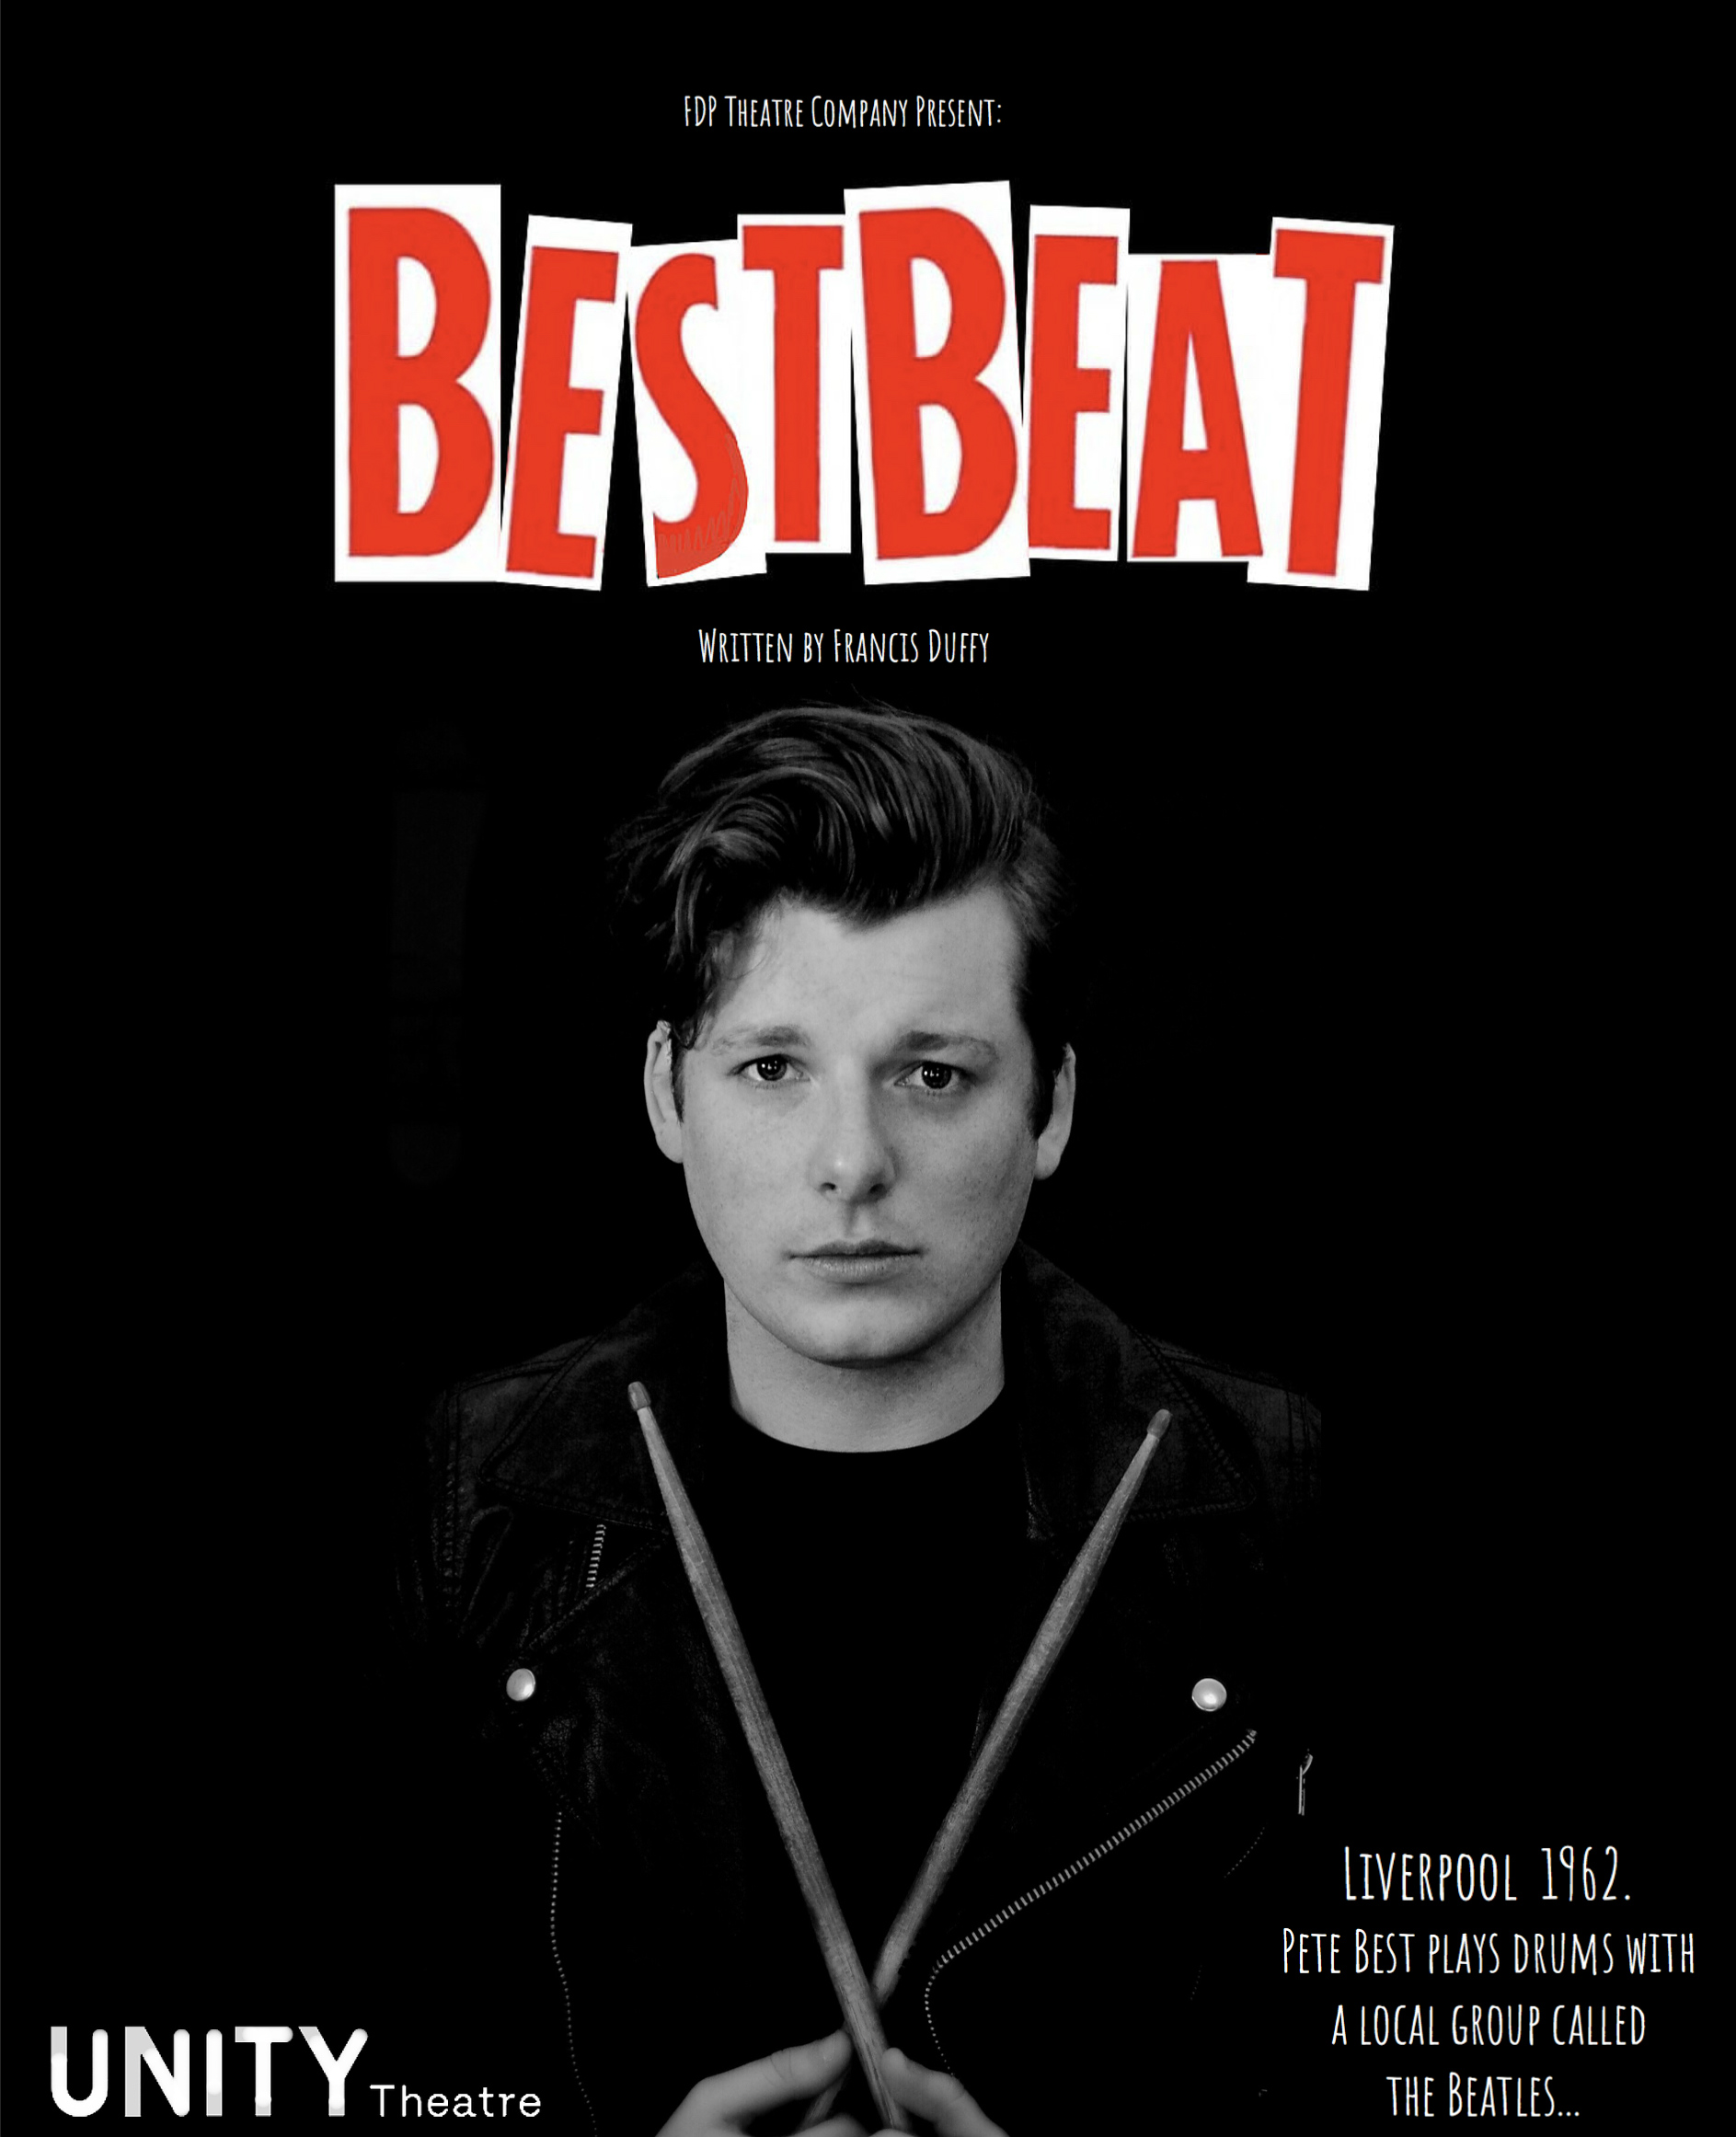 Andrew Games as Pete Best on show poster